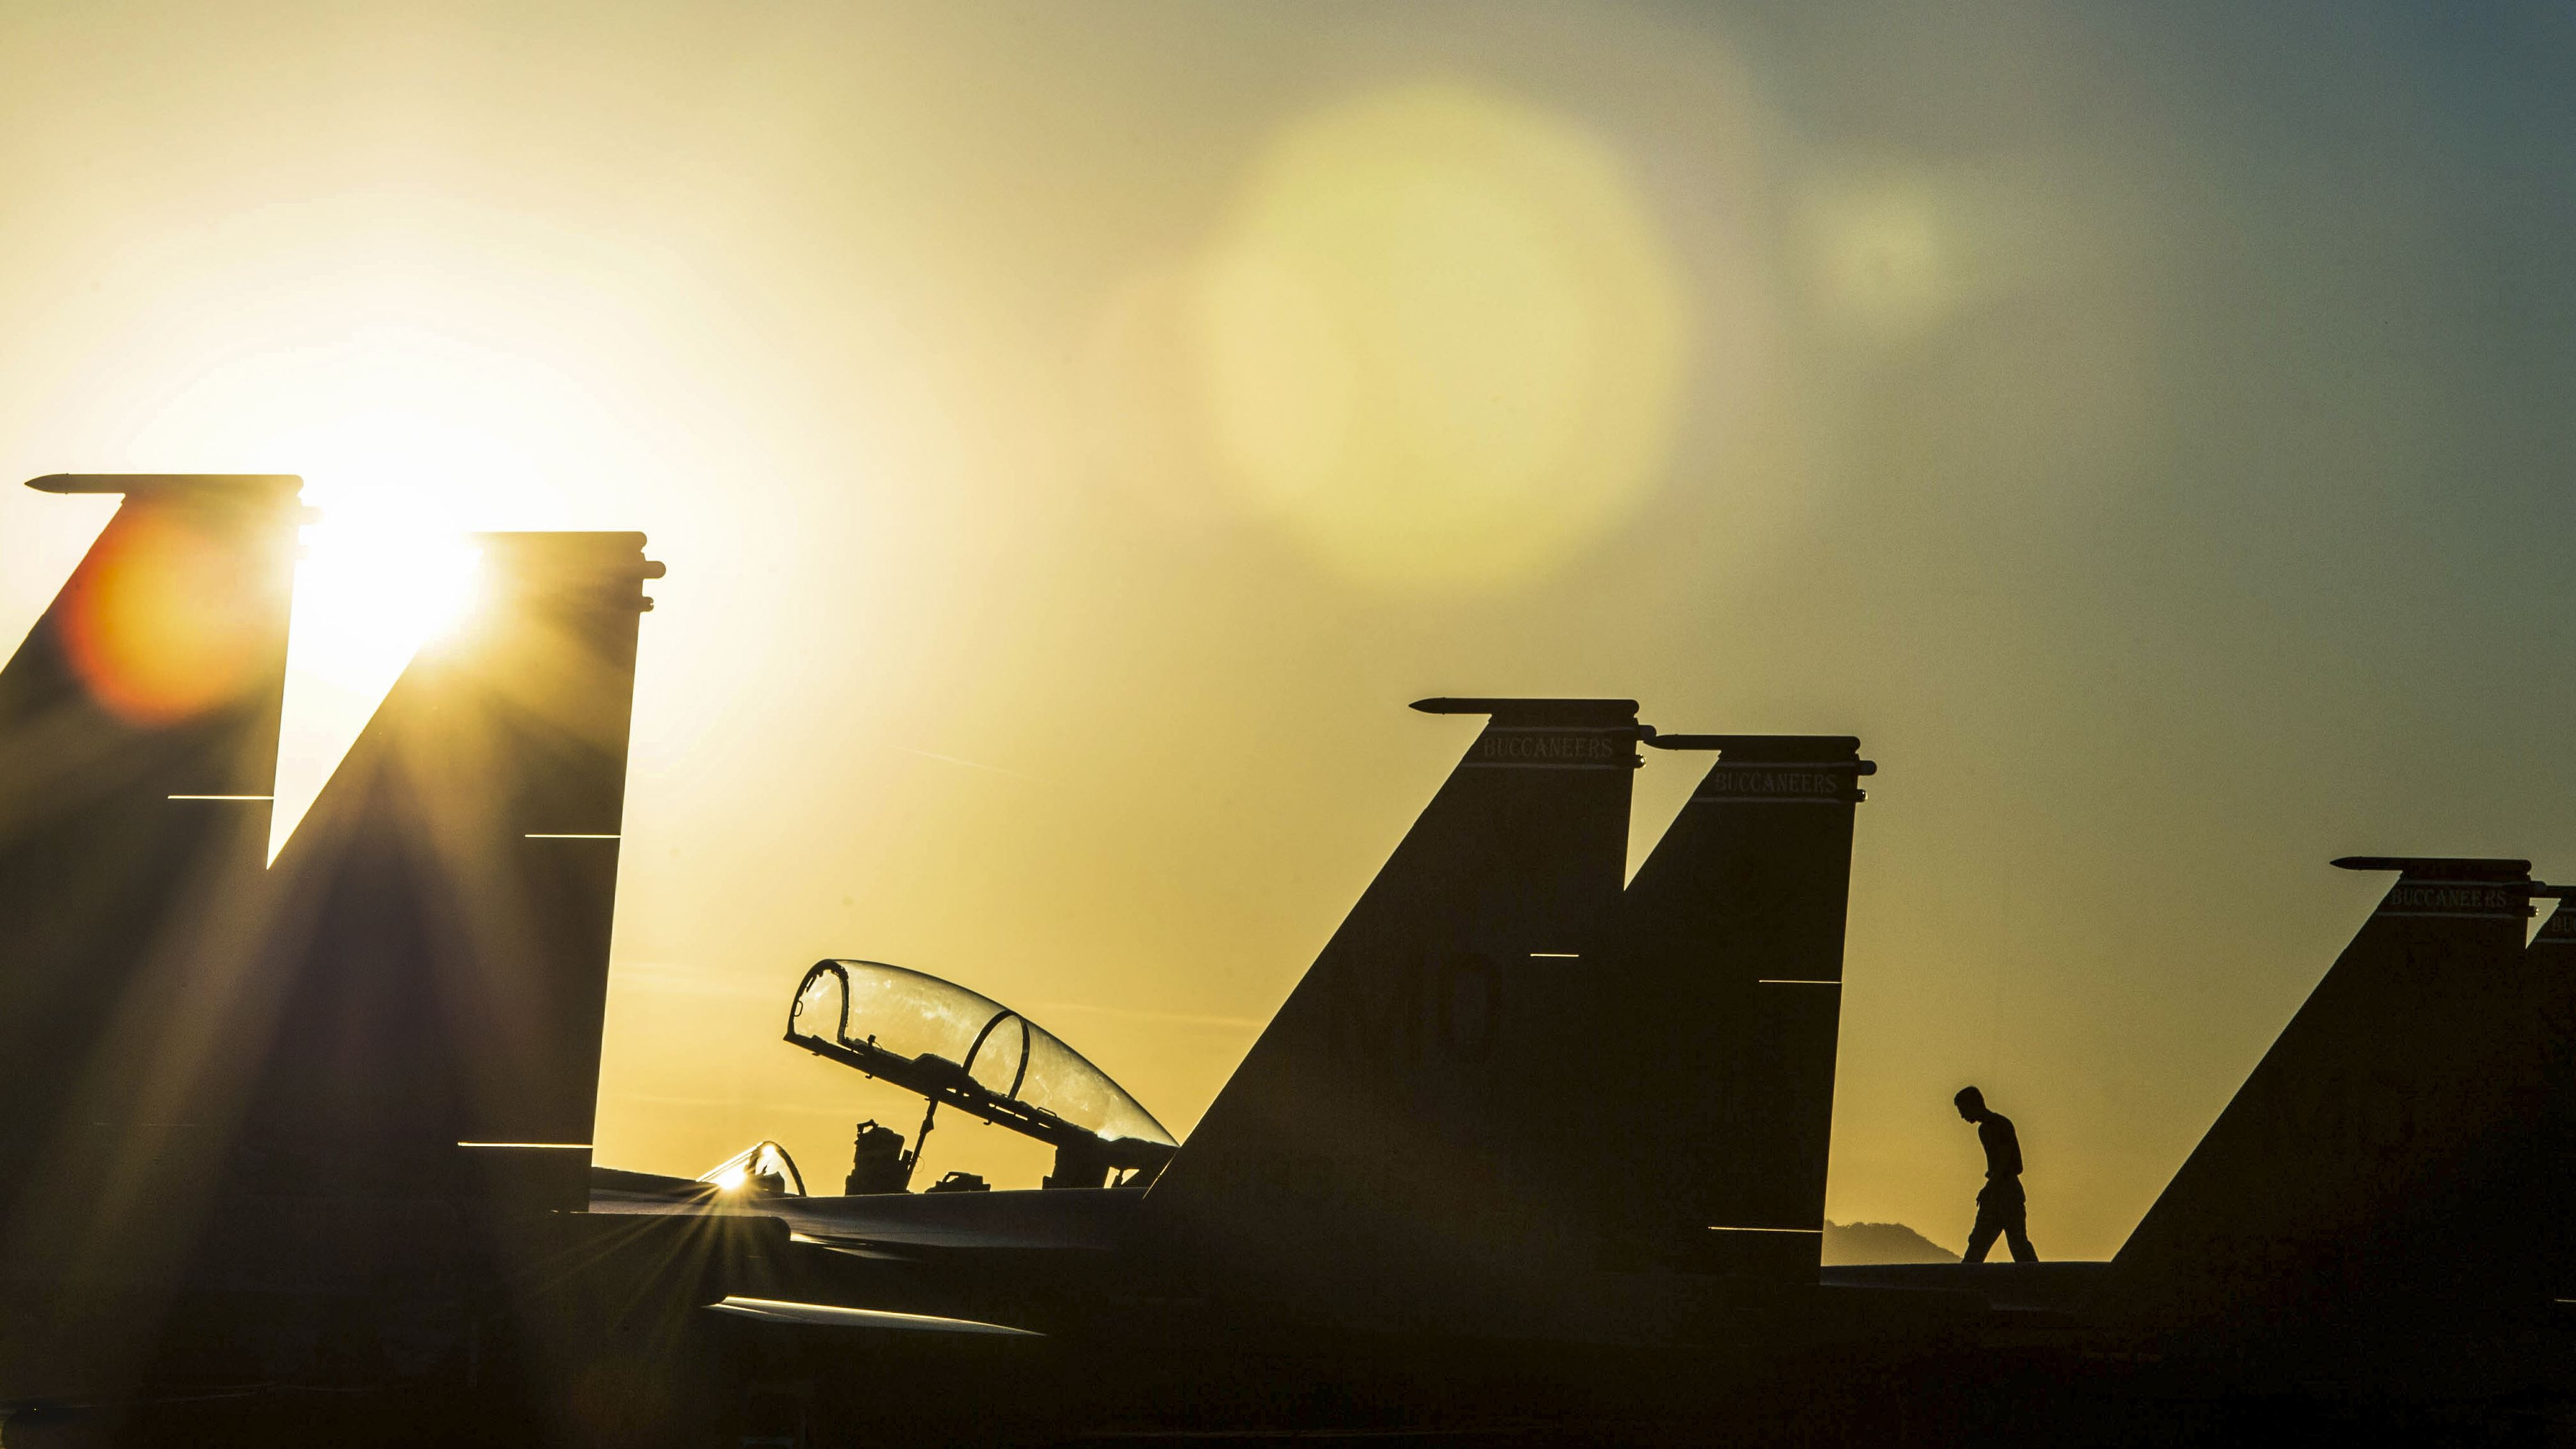 Air Force F-15SG Eagle aircraft assigned to the 428th Fighter Squadron sit on the flightline at Luke Air Force Base, Ariz., during Forging Sabre, a two-week exercise conducted by U.S. and Singaporean troops. (Staff Sgt. Jensen Stidham/Air Force)